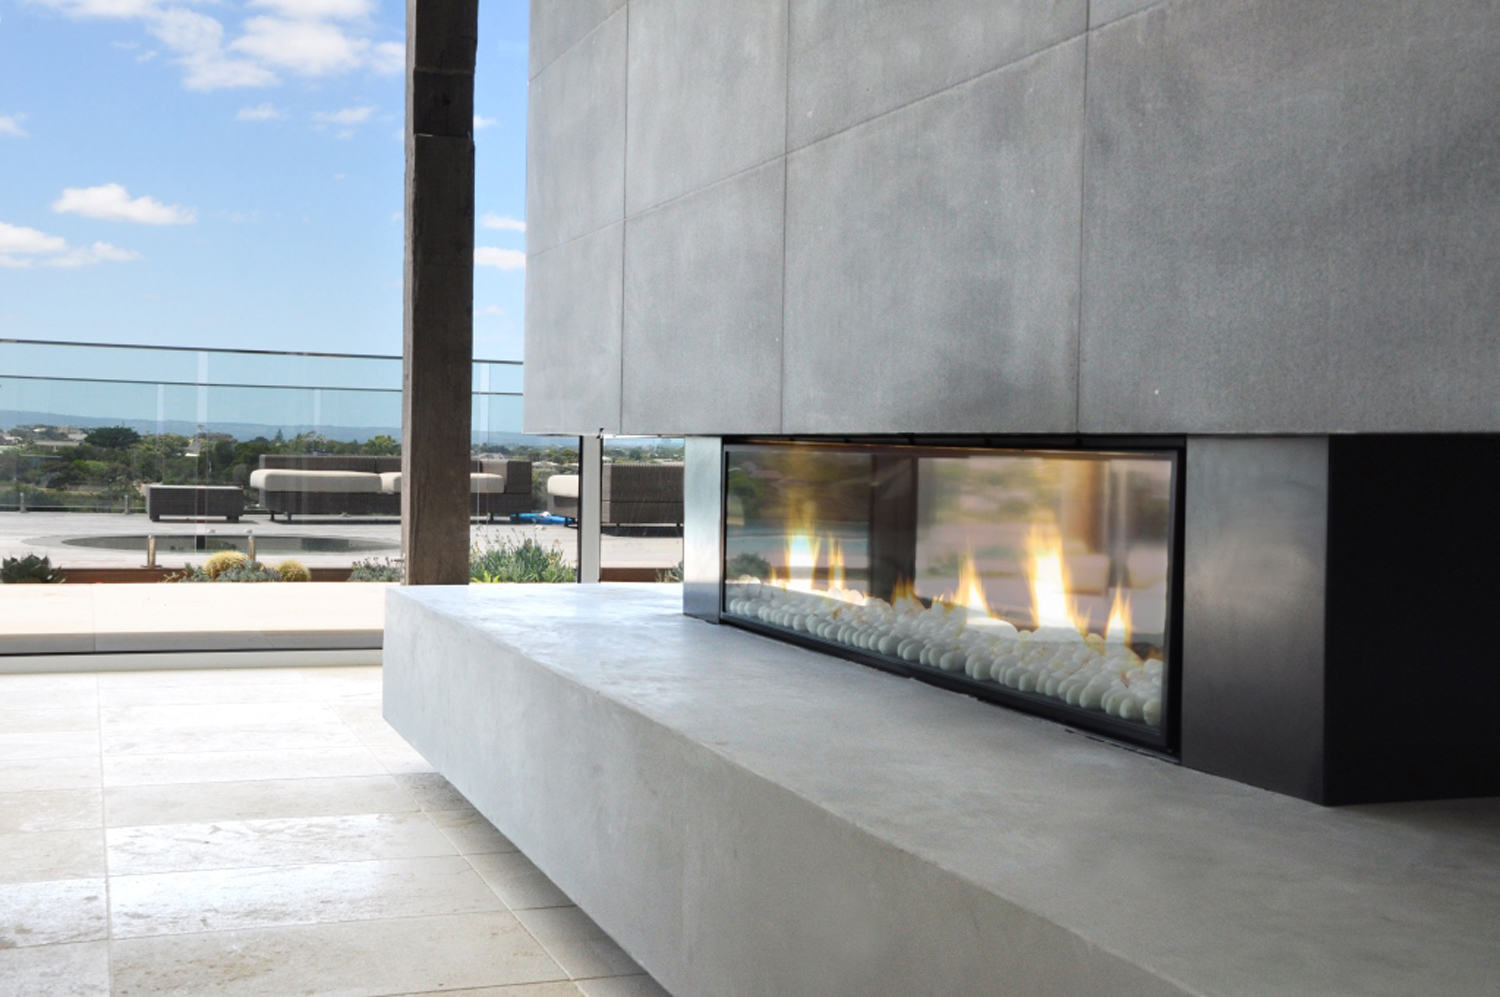 The Escea DX1500 gas fireplace